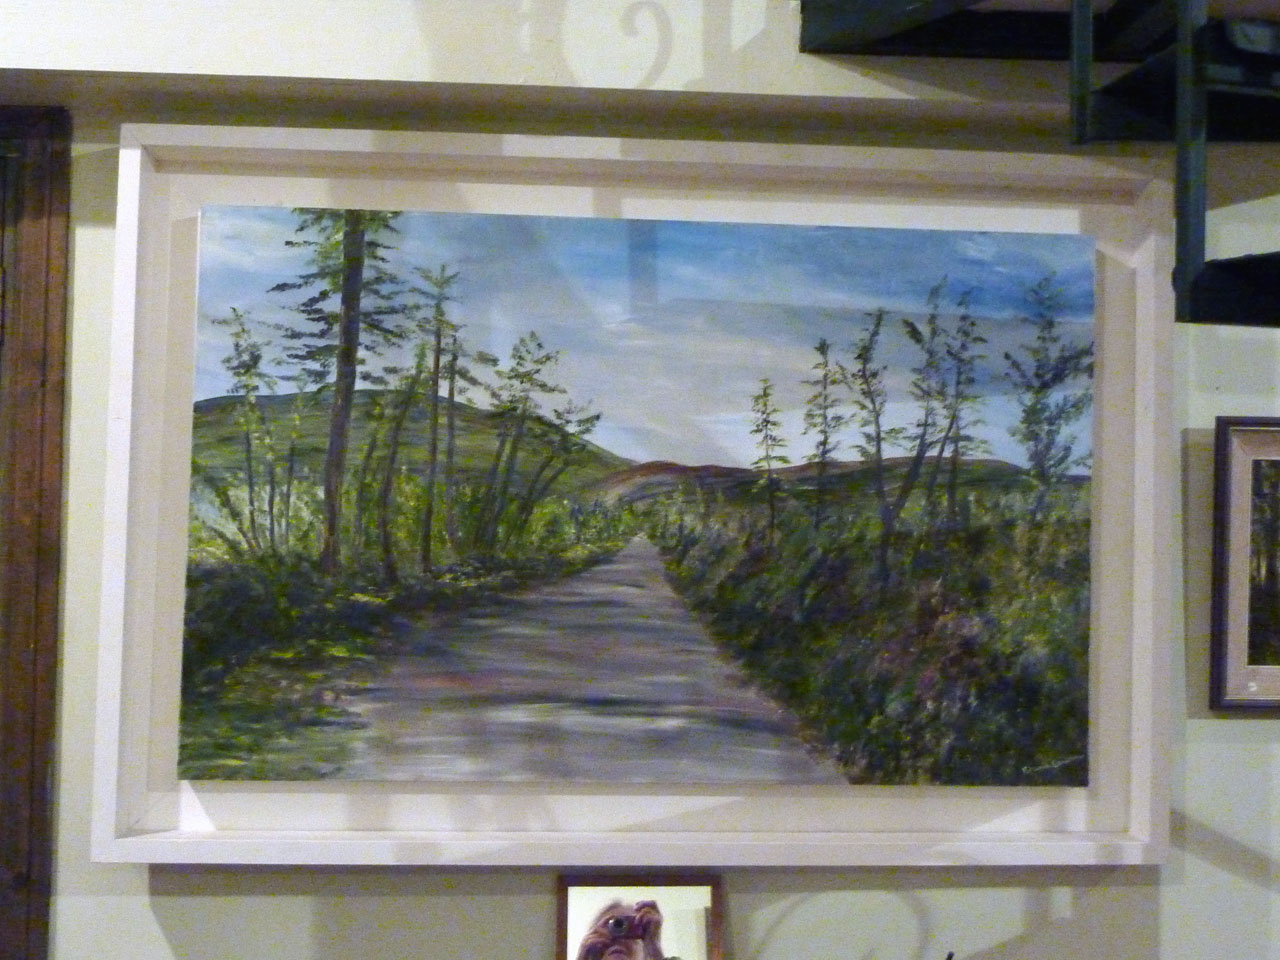 Original Artwork Paintings for Sale | Cullintra House Art Gallery | Patricia Cantlon Artist